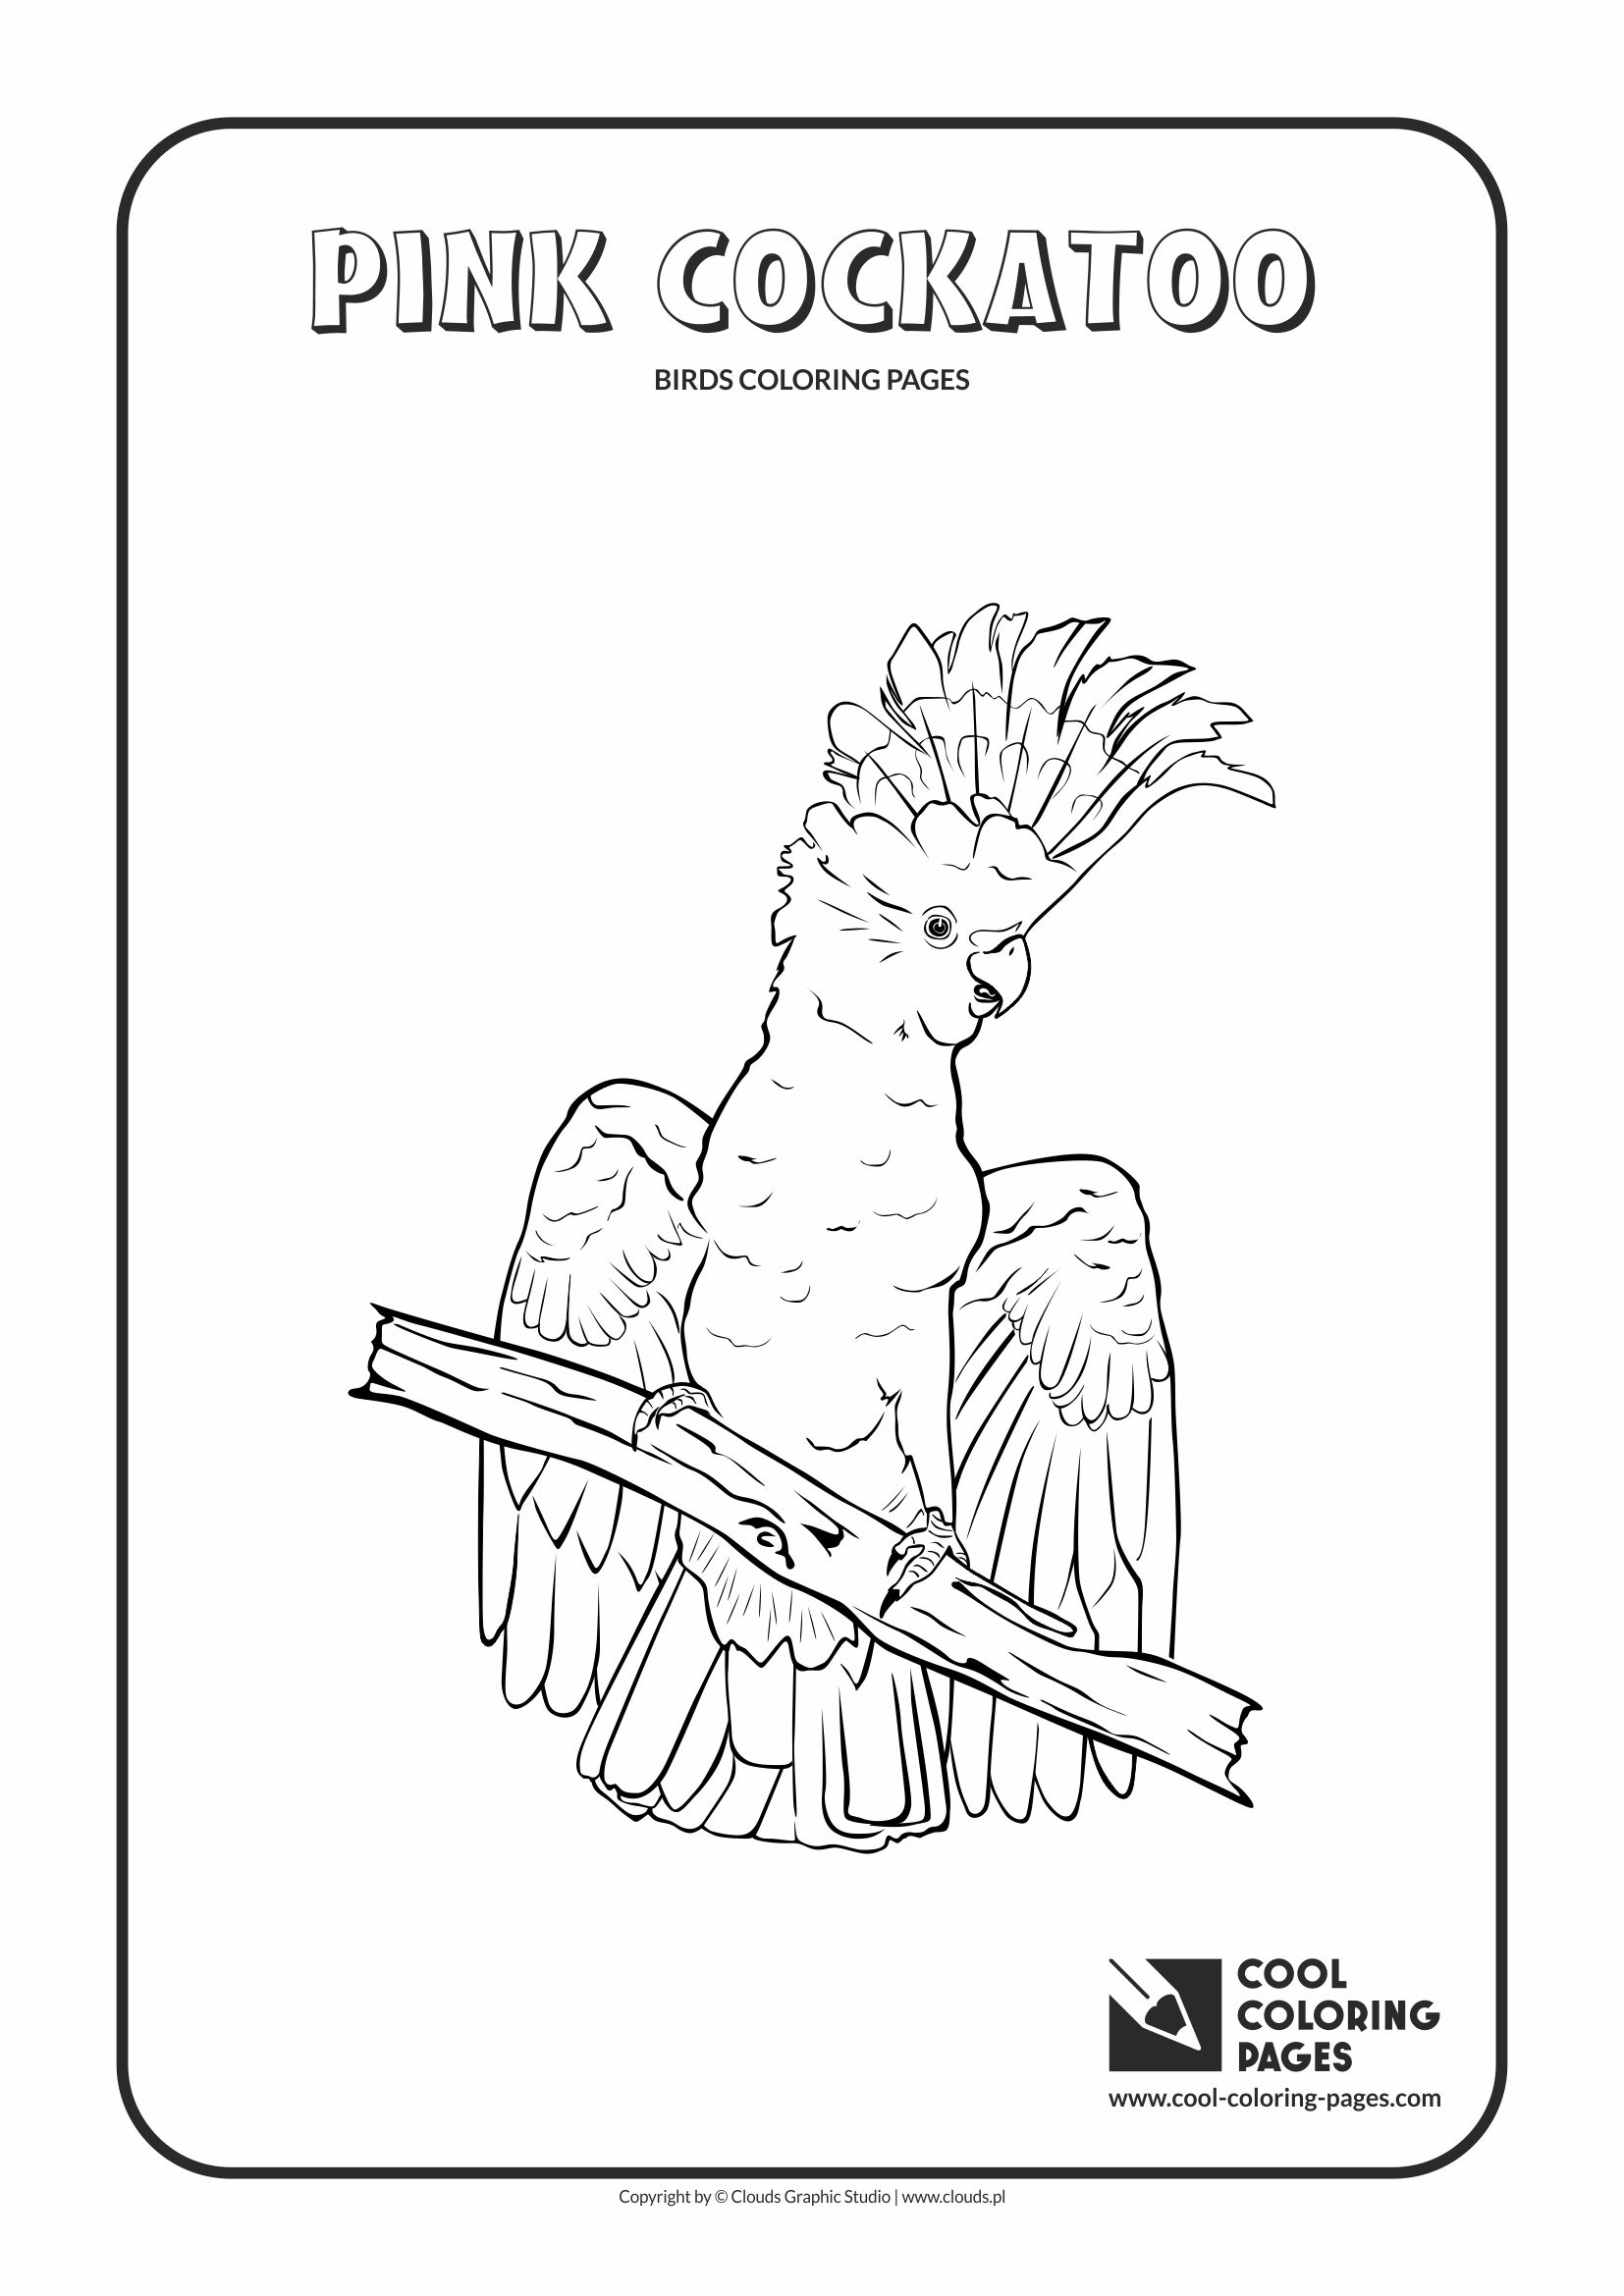 Cool coloring pages birds coloring pages cool coloring, bird coloring pages